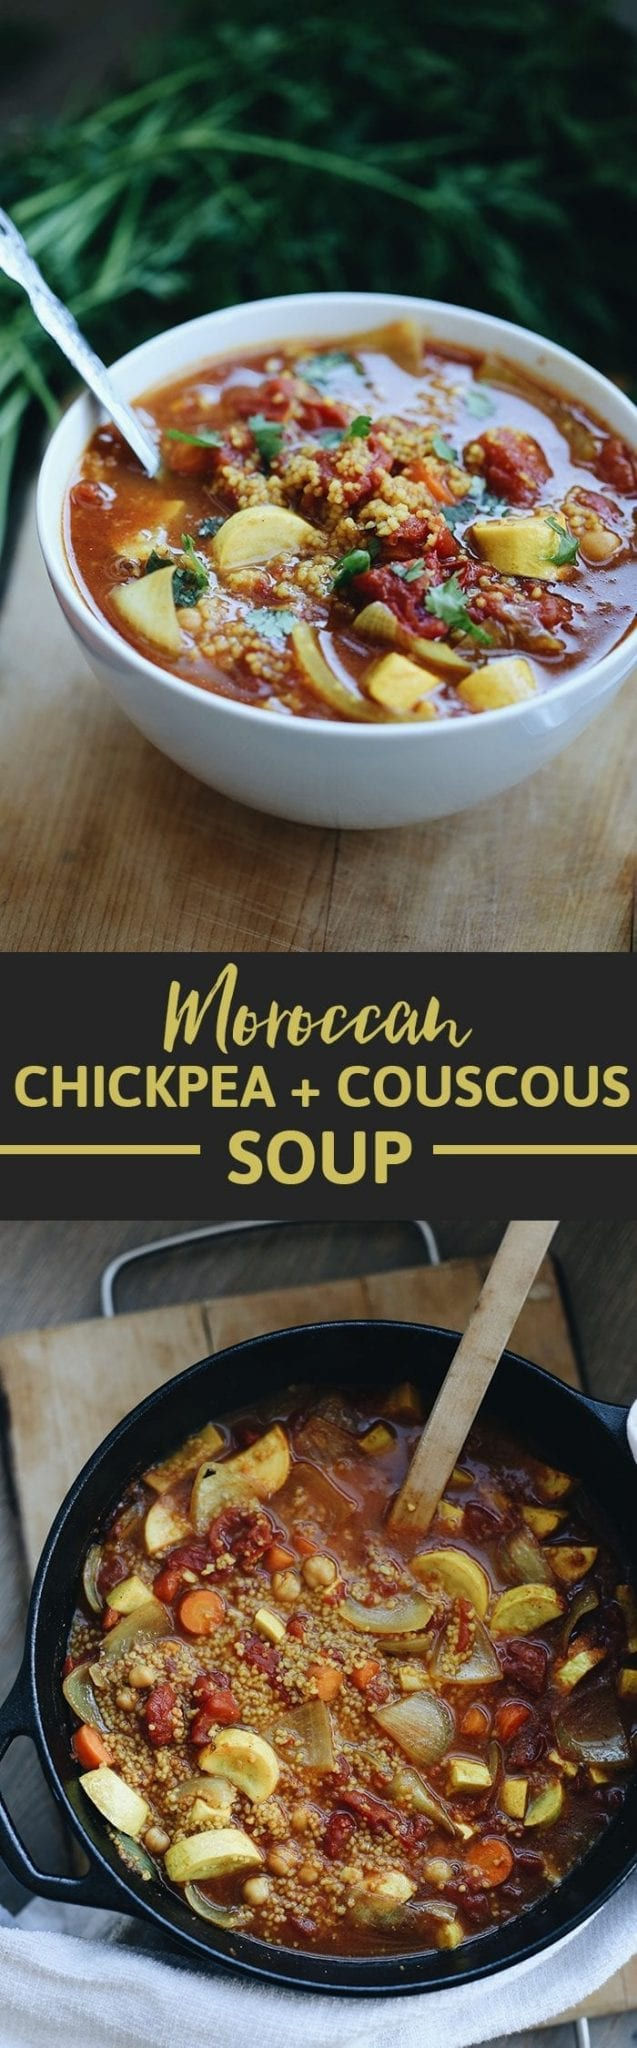 Souper Sunday returns with this Moroccan Chickpea and Couscous Soup! A one pot meal full of zesty and sweet moroccan spices, hearty couscous and a chickpea protein boost. Perfect for lazy winter day when you're craving a flavorful bowl of soup.